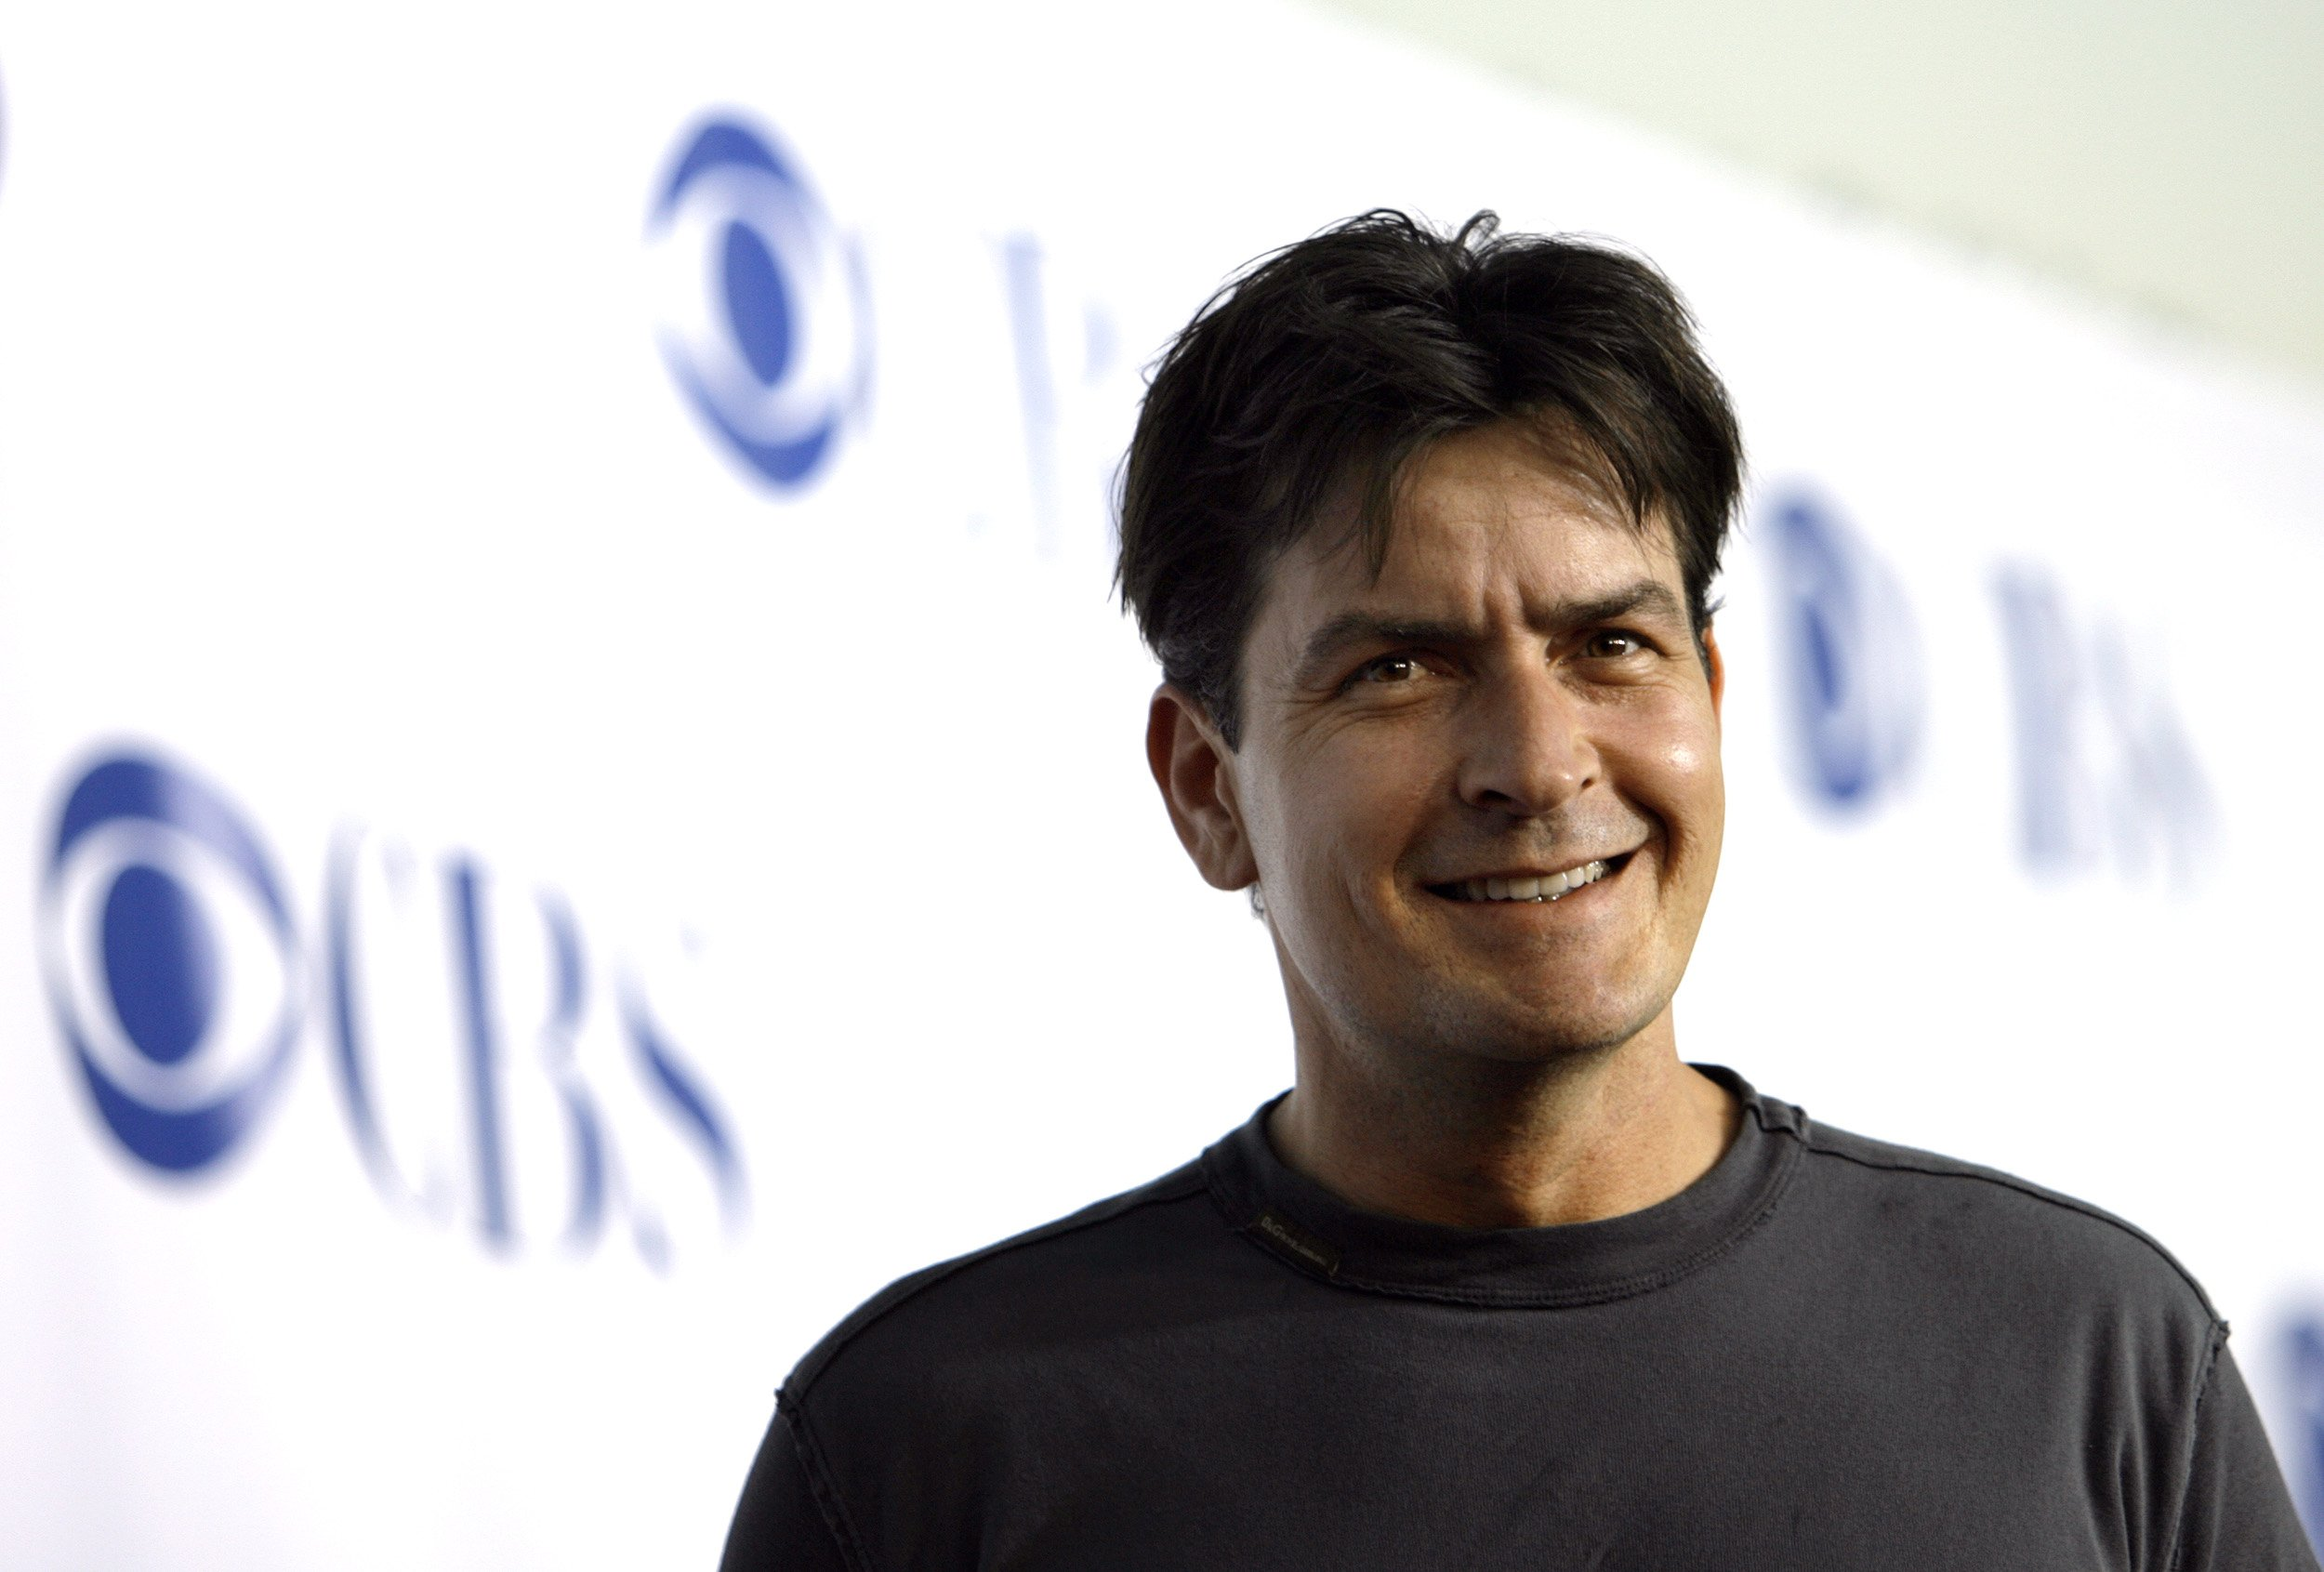 1117_Charlie Sheen HIV Positive